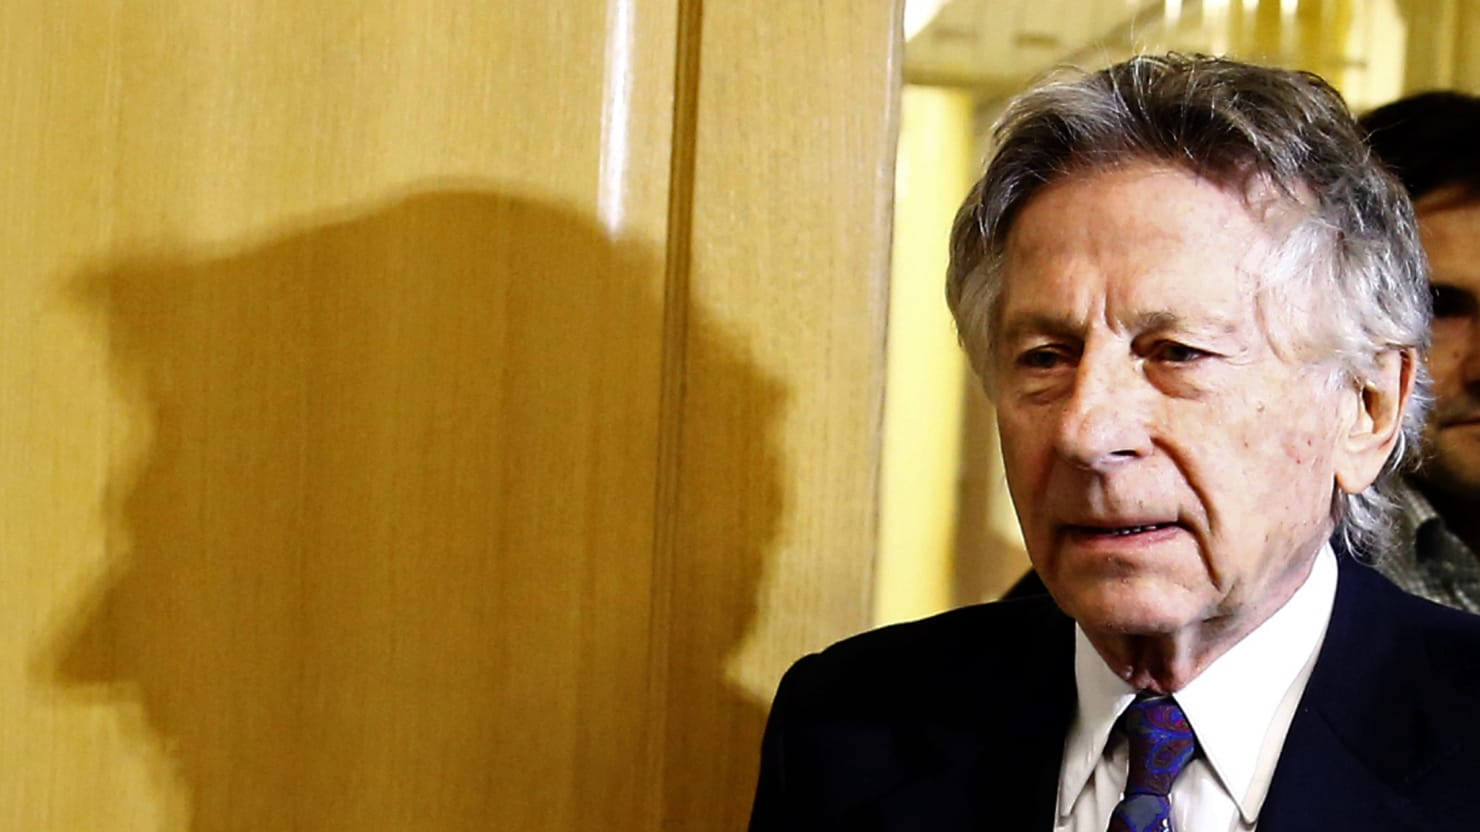 Roman Polanski Sues Academy of Motion Pictures Over Ousting